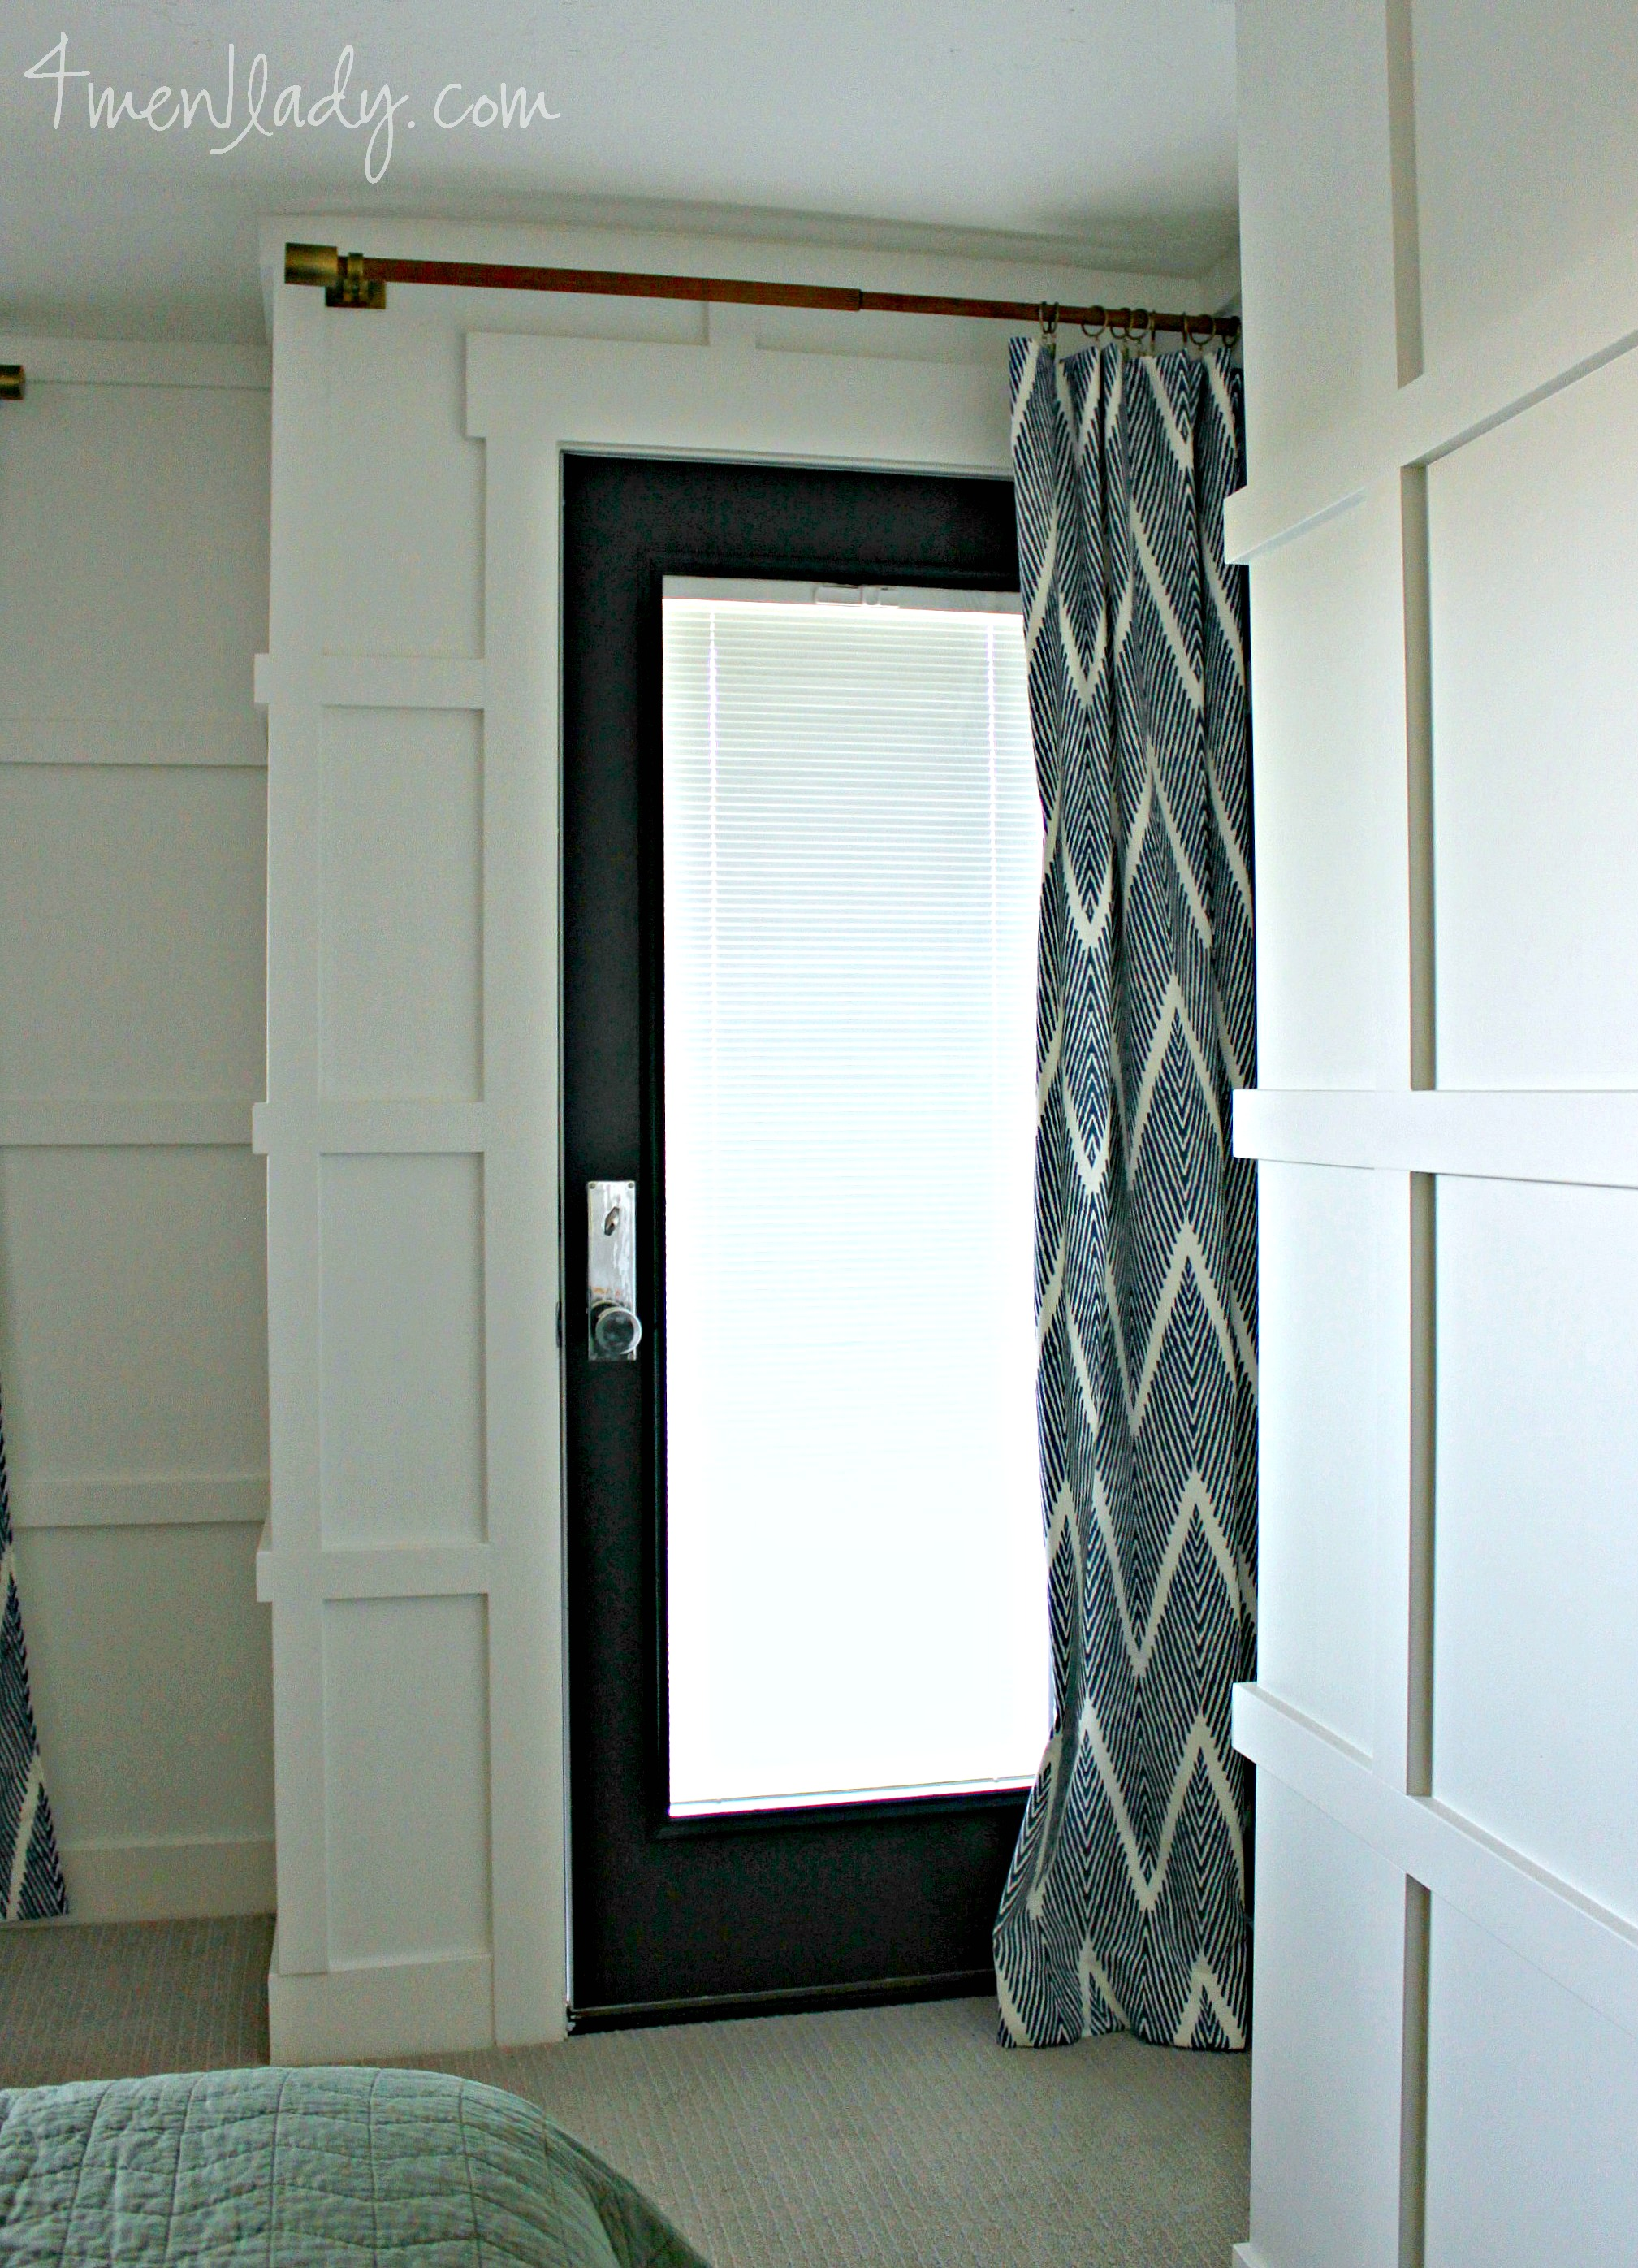 When we first moved in we had a new Jeldwen door installed that we ordered  through the Home Depot  It s a beautiful door and well. Bedroom door before and after